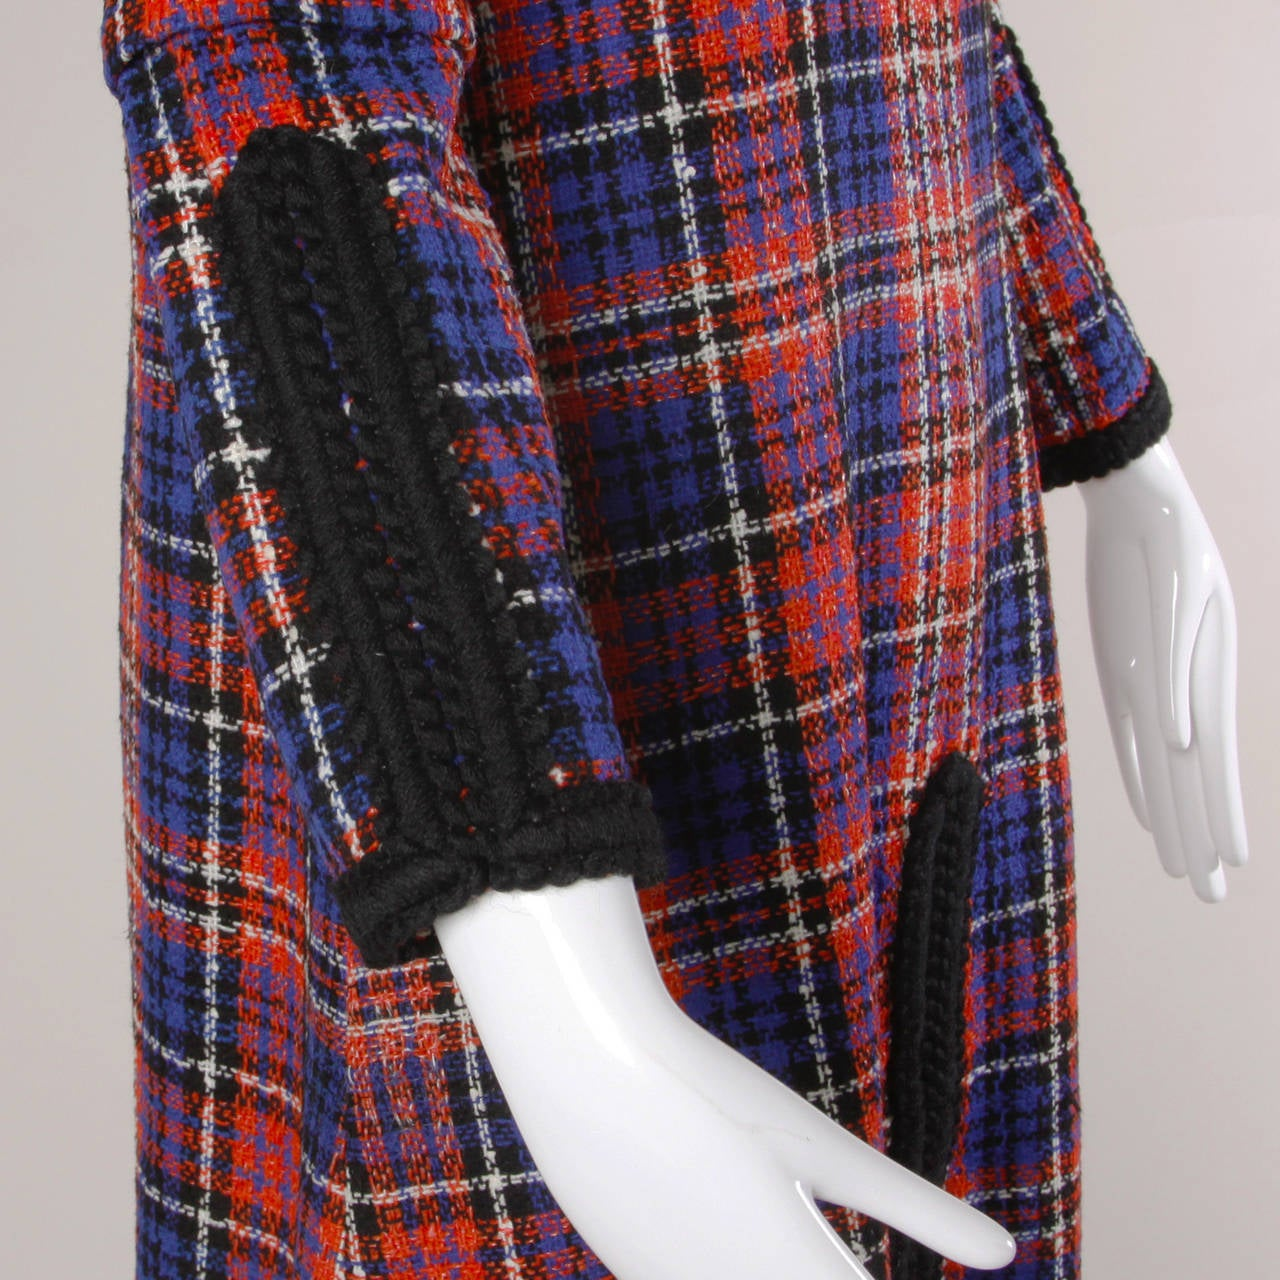 Oscar de la Renta Vintage 1960s Plaid Dress In Excellent Condition For Sale In Sparks, NV